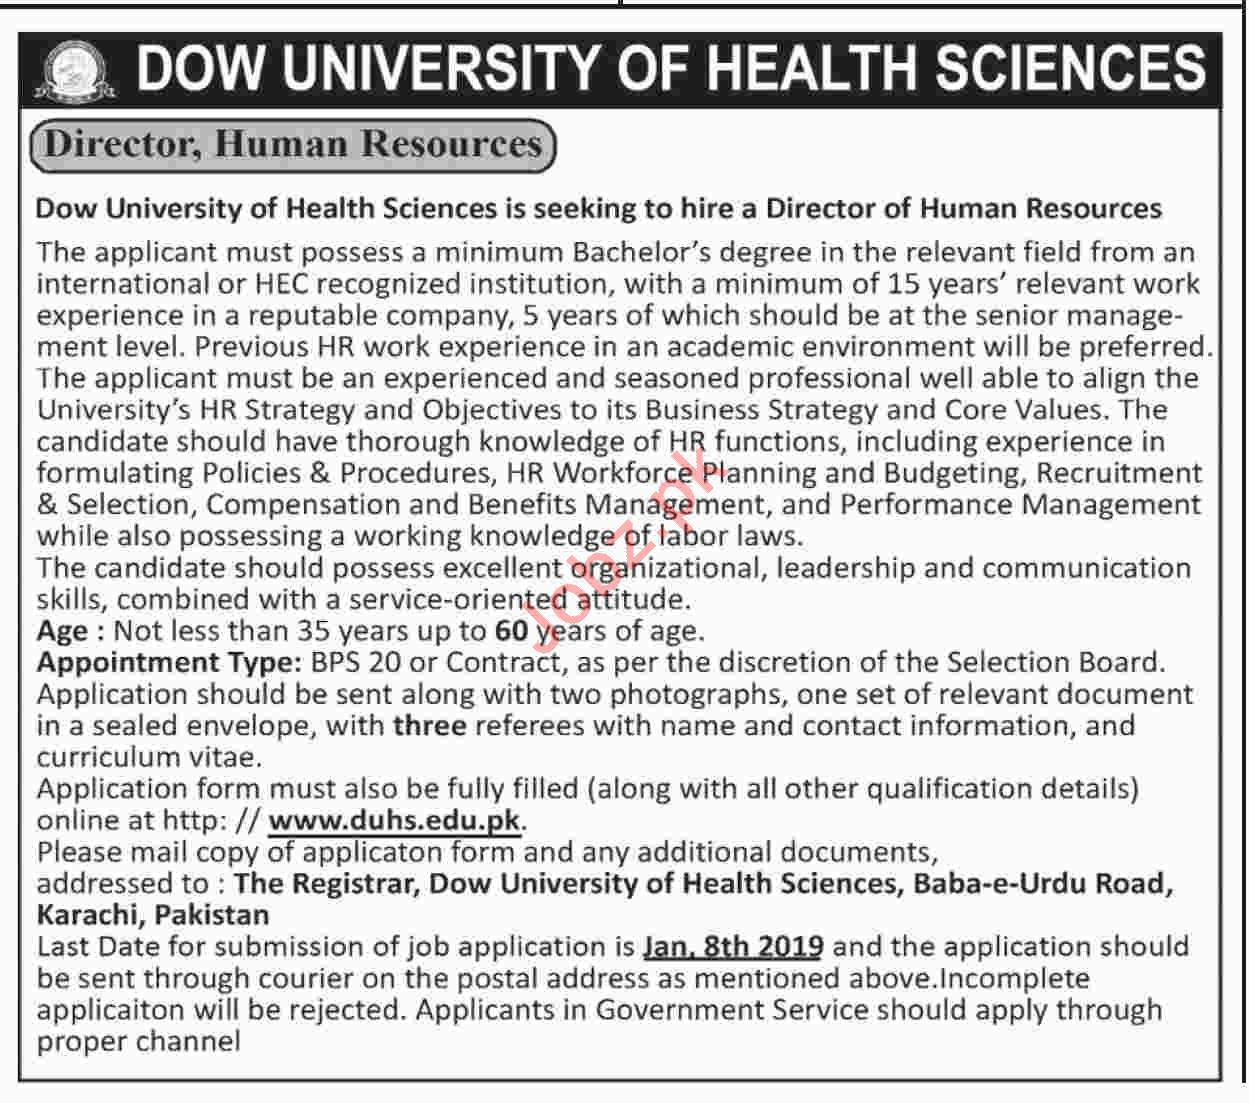 Director Human Resources Jobs at Dow University